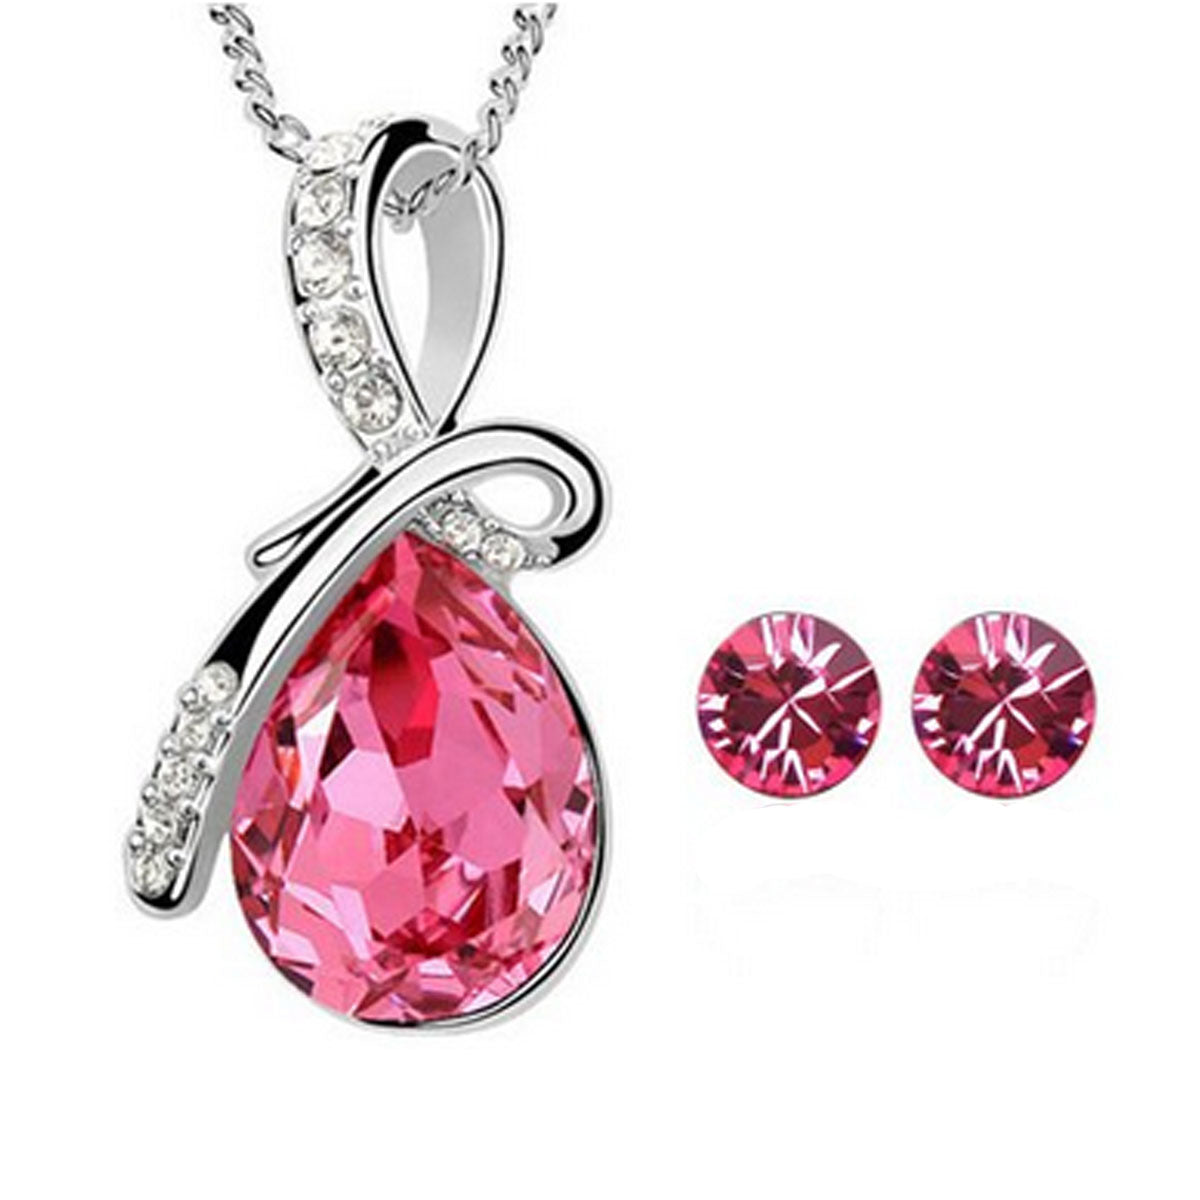 Wrapables Eternal Love Swarovski Elements Crystal Teardrop Pendant Necklace and Stud Earrings Jewelry Set